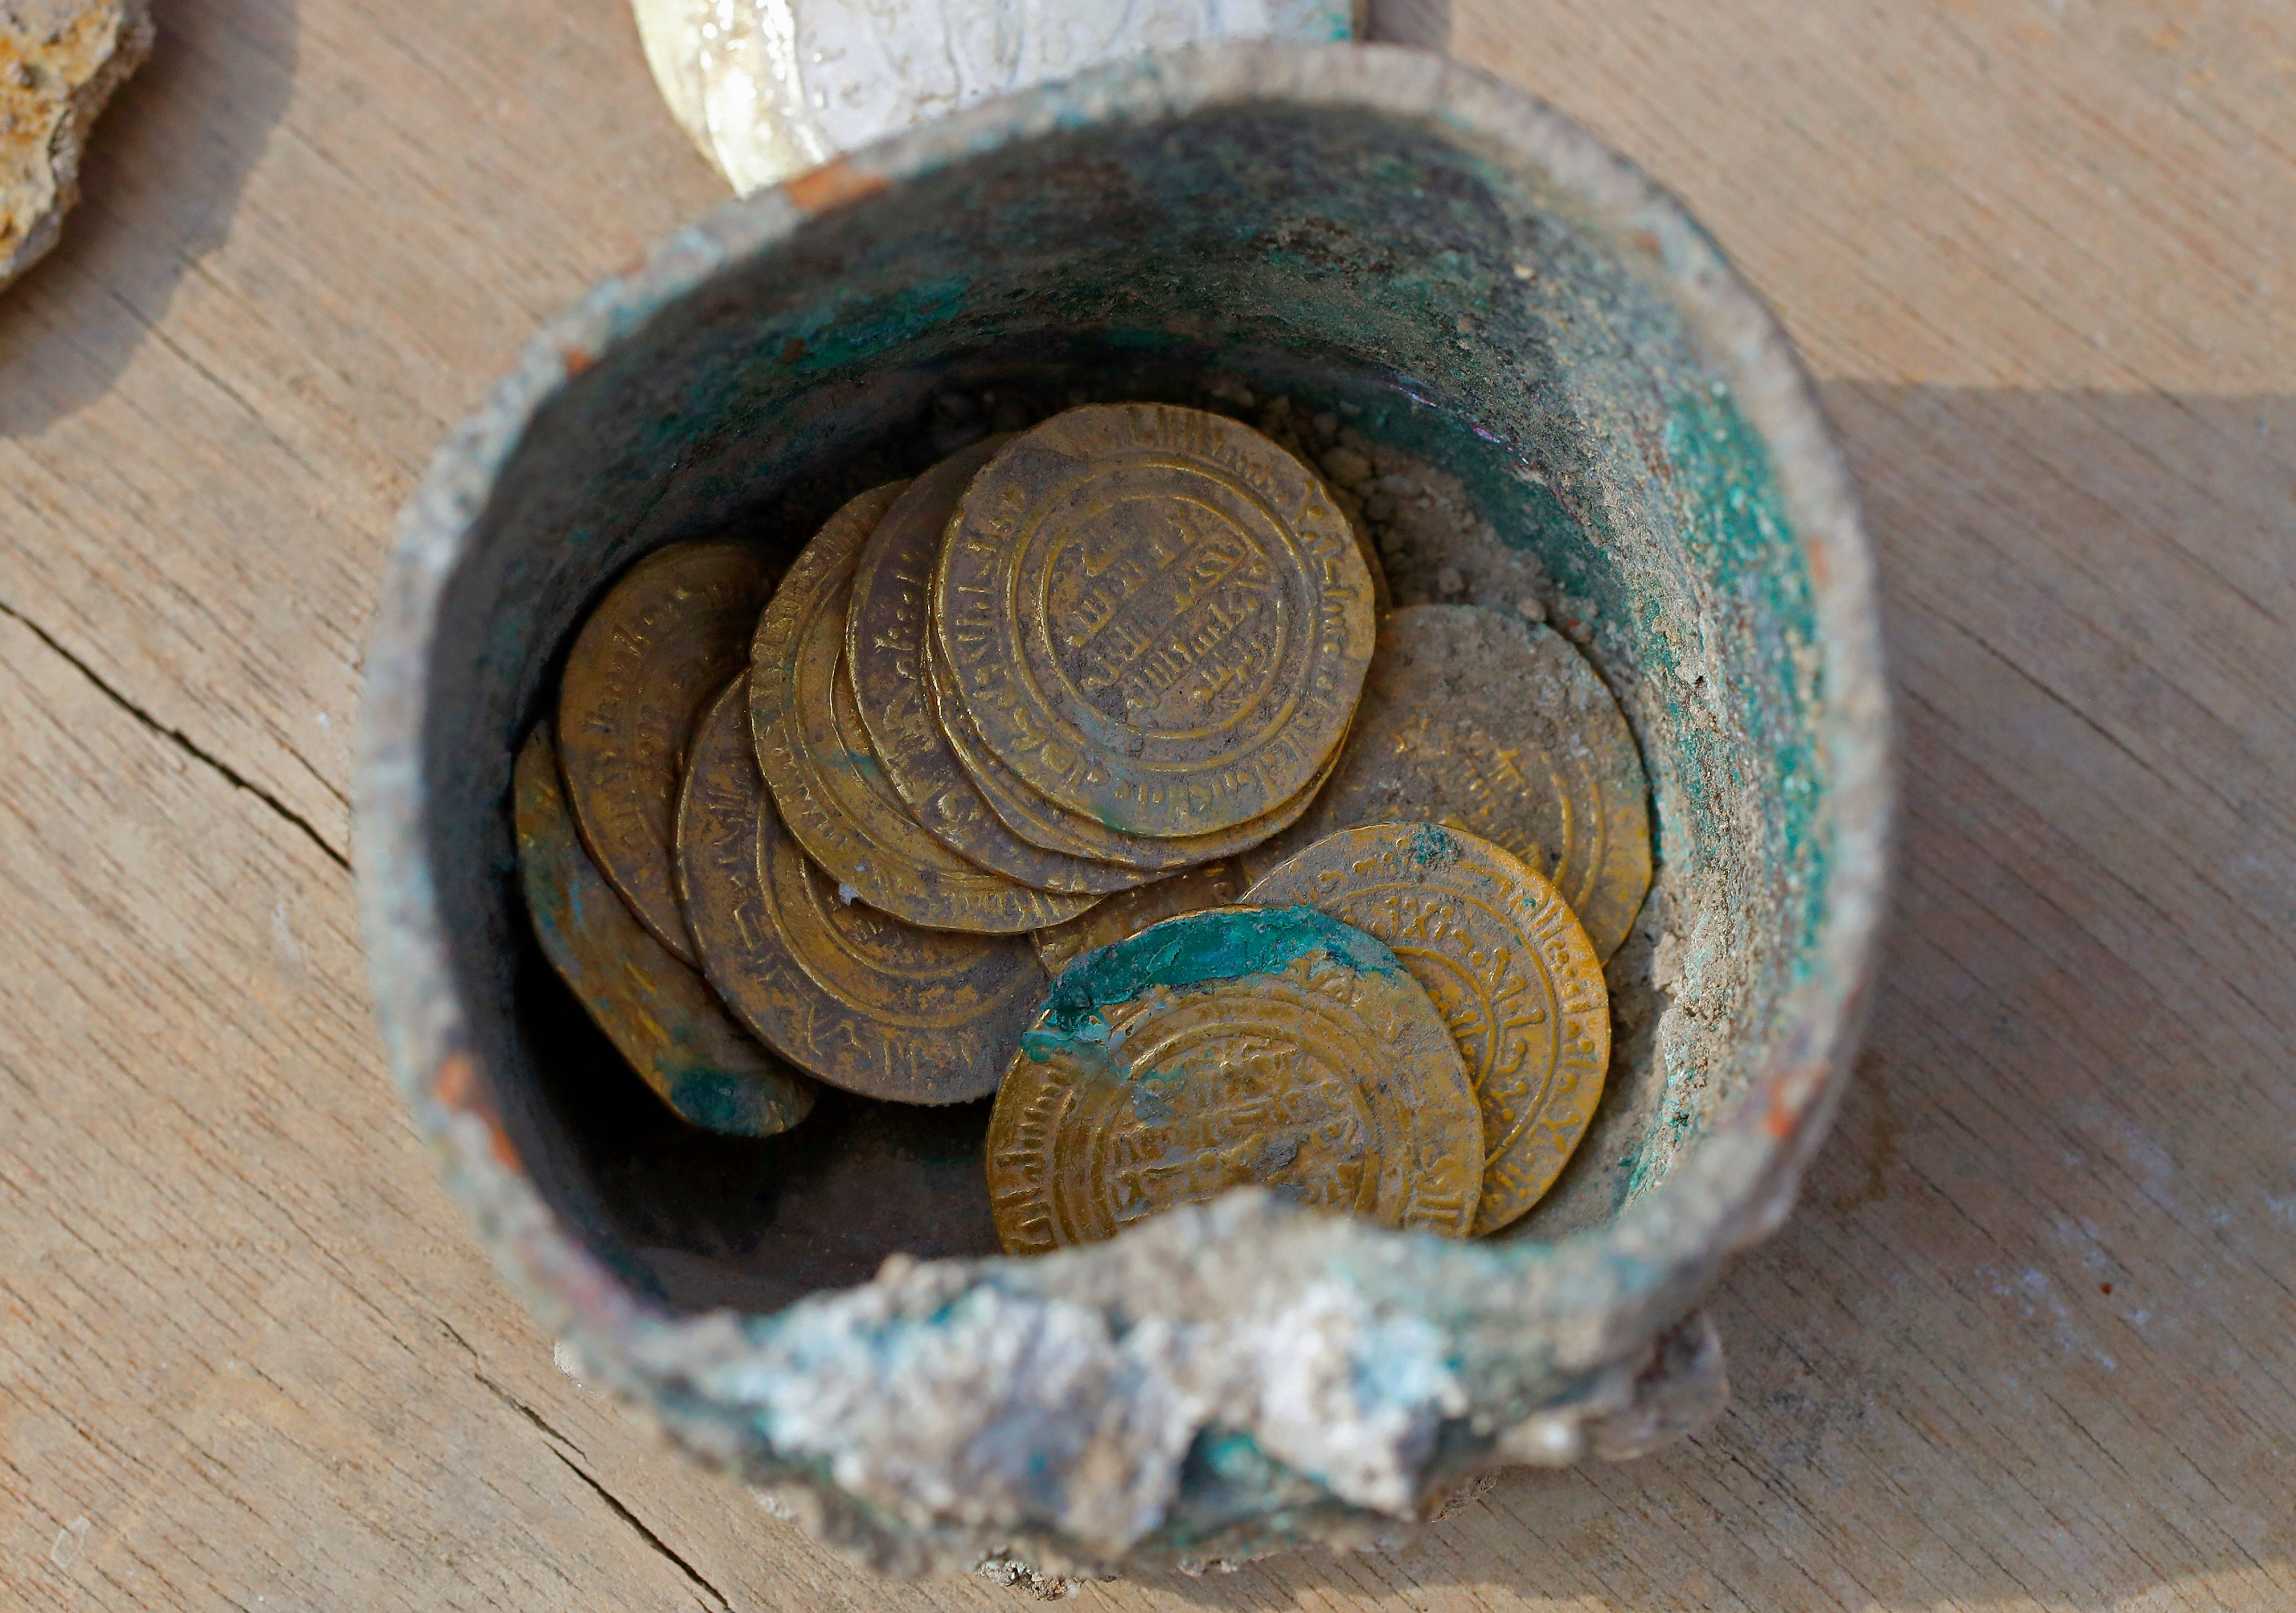 coins of israel found in old city